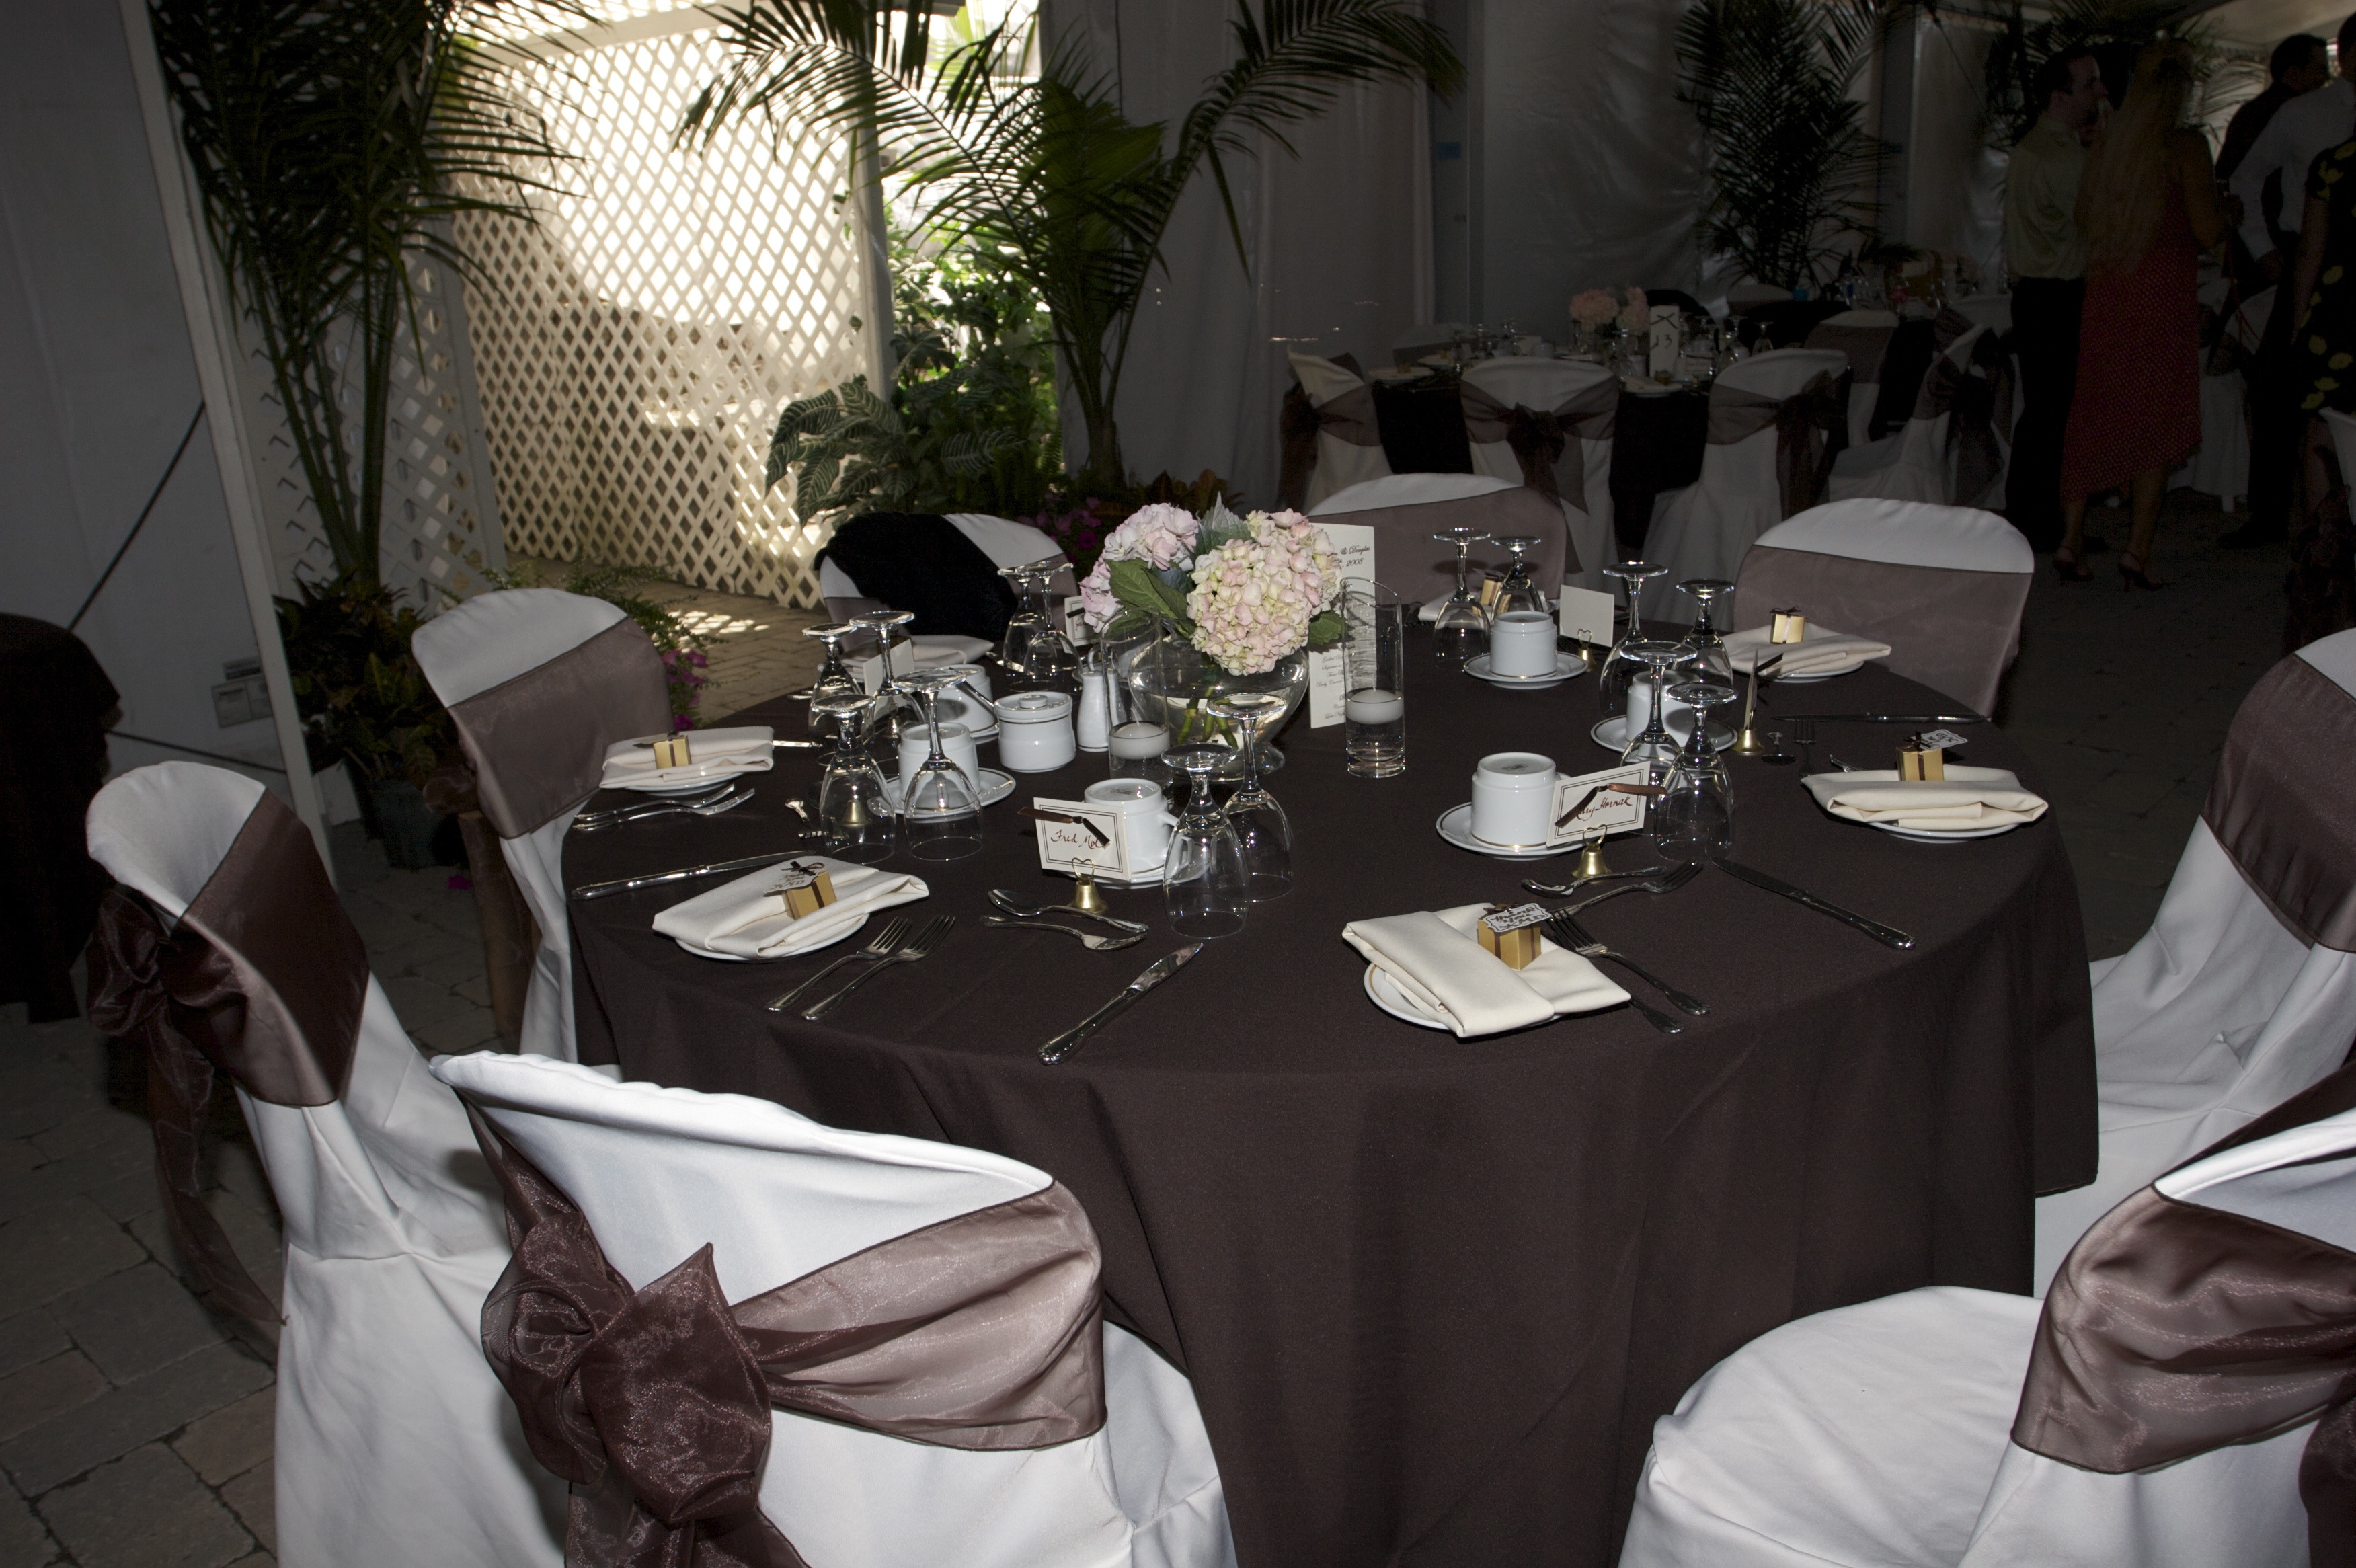 Table setting of Ivory & Chocolate Brown